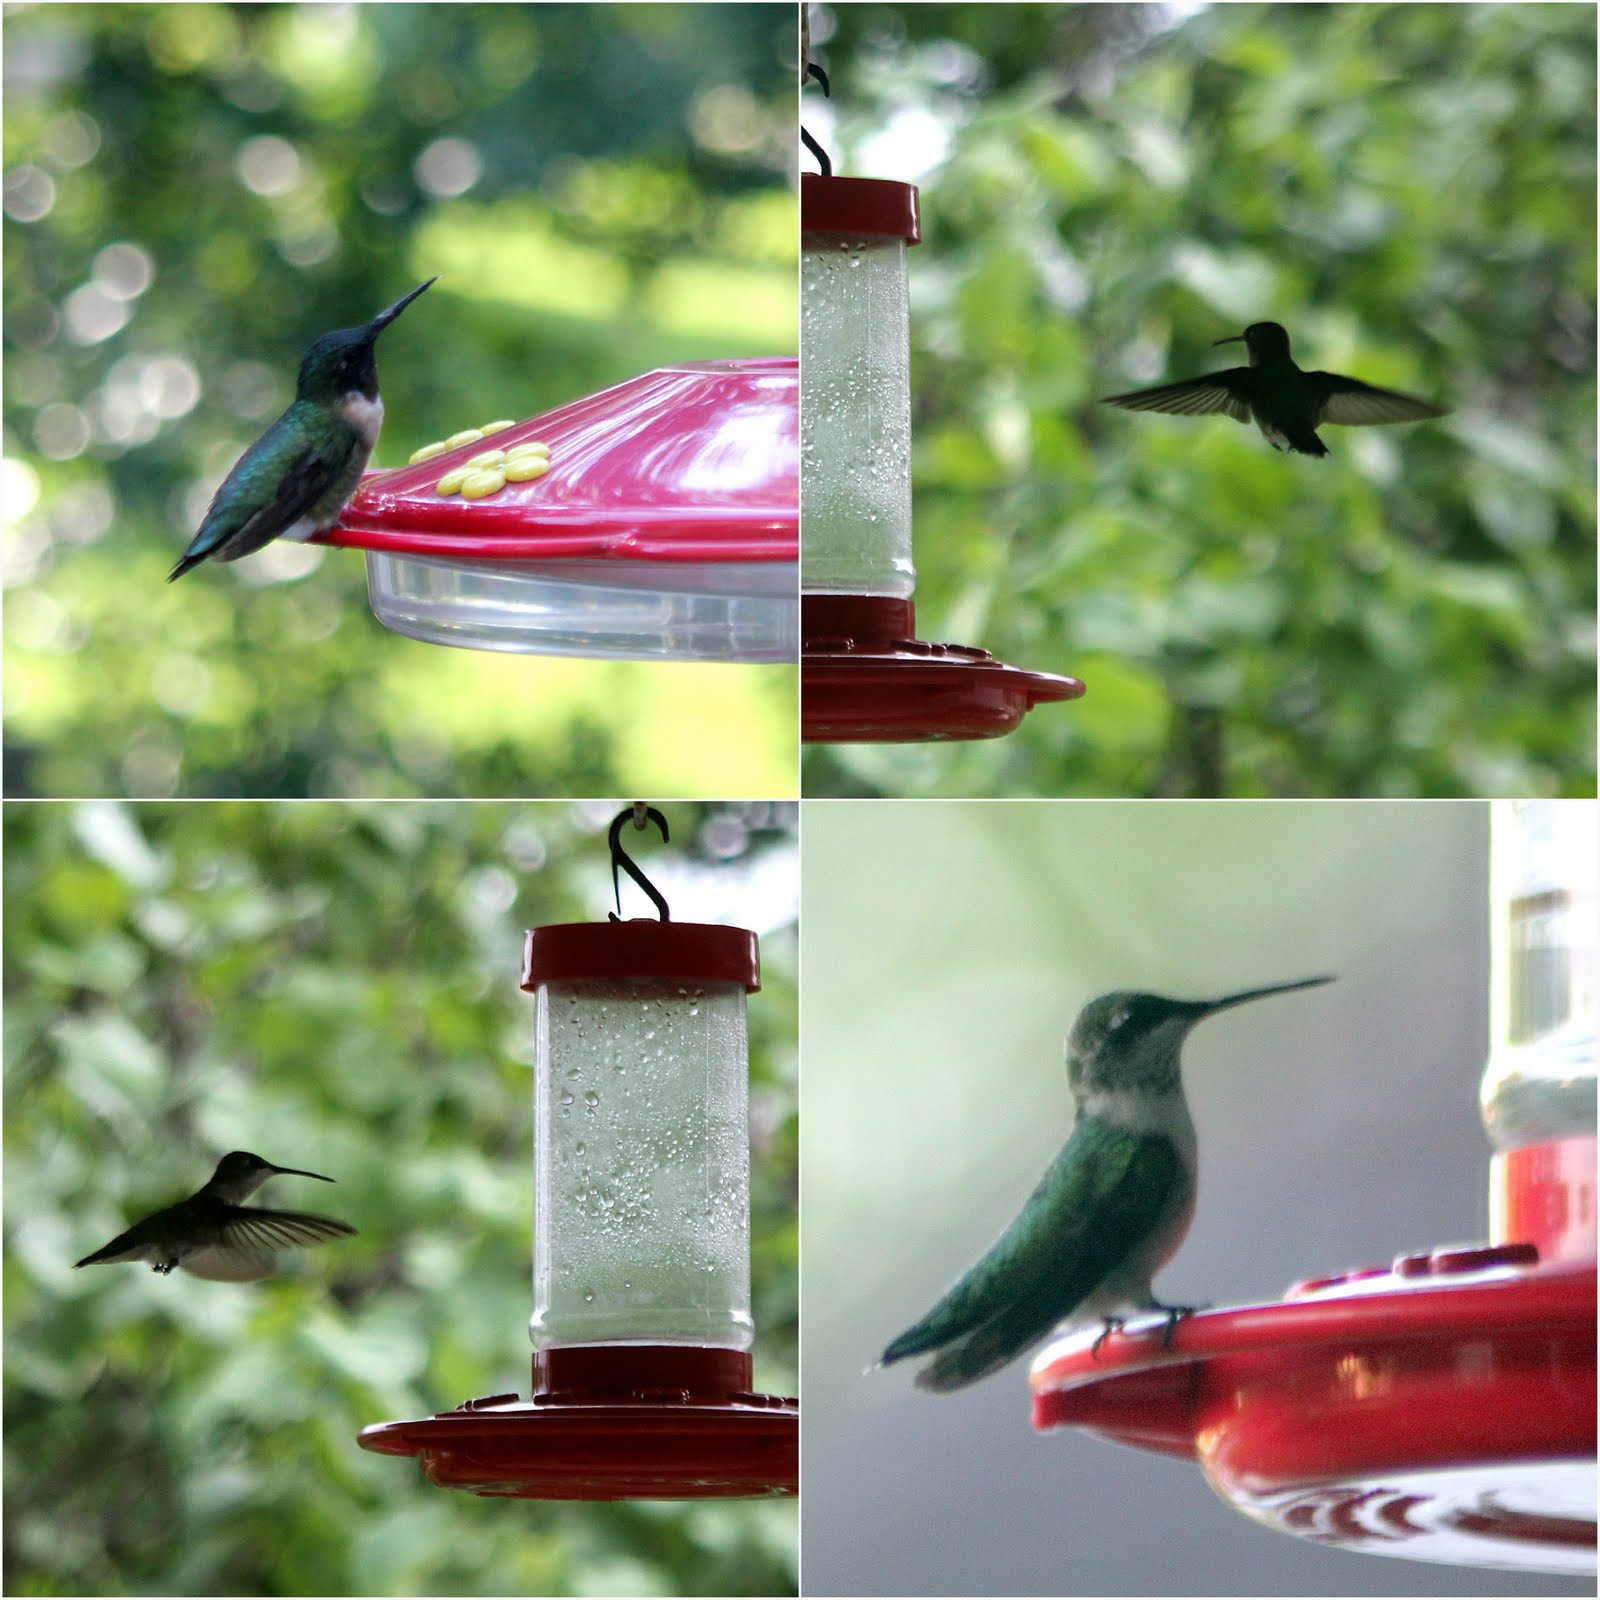 Amazing Hummingbirds Amp Sugar Water Recipe For Feeders